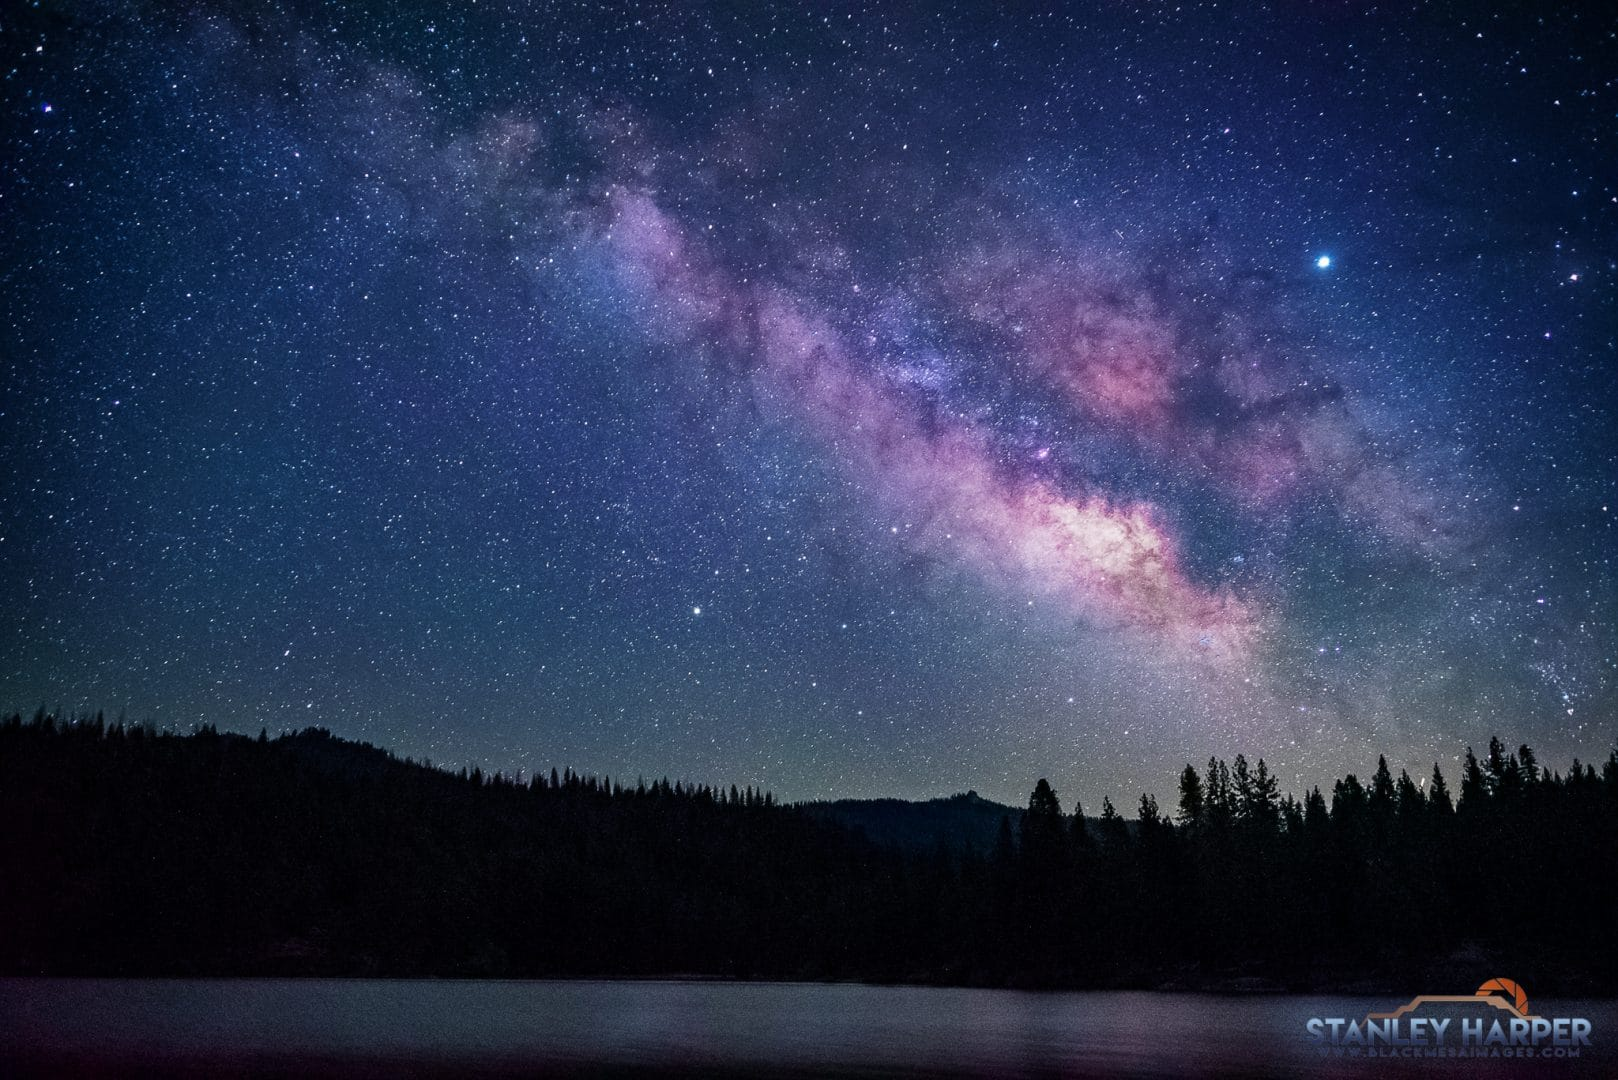 The obnoxious light-polluted skies of California's Central Valley give way to beautiful night skies in the Central Sierra Nevada. Photo by Stanley Harper.